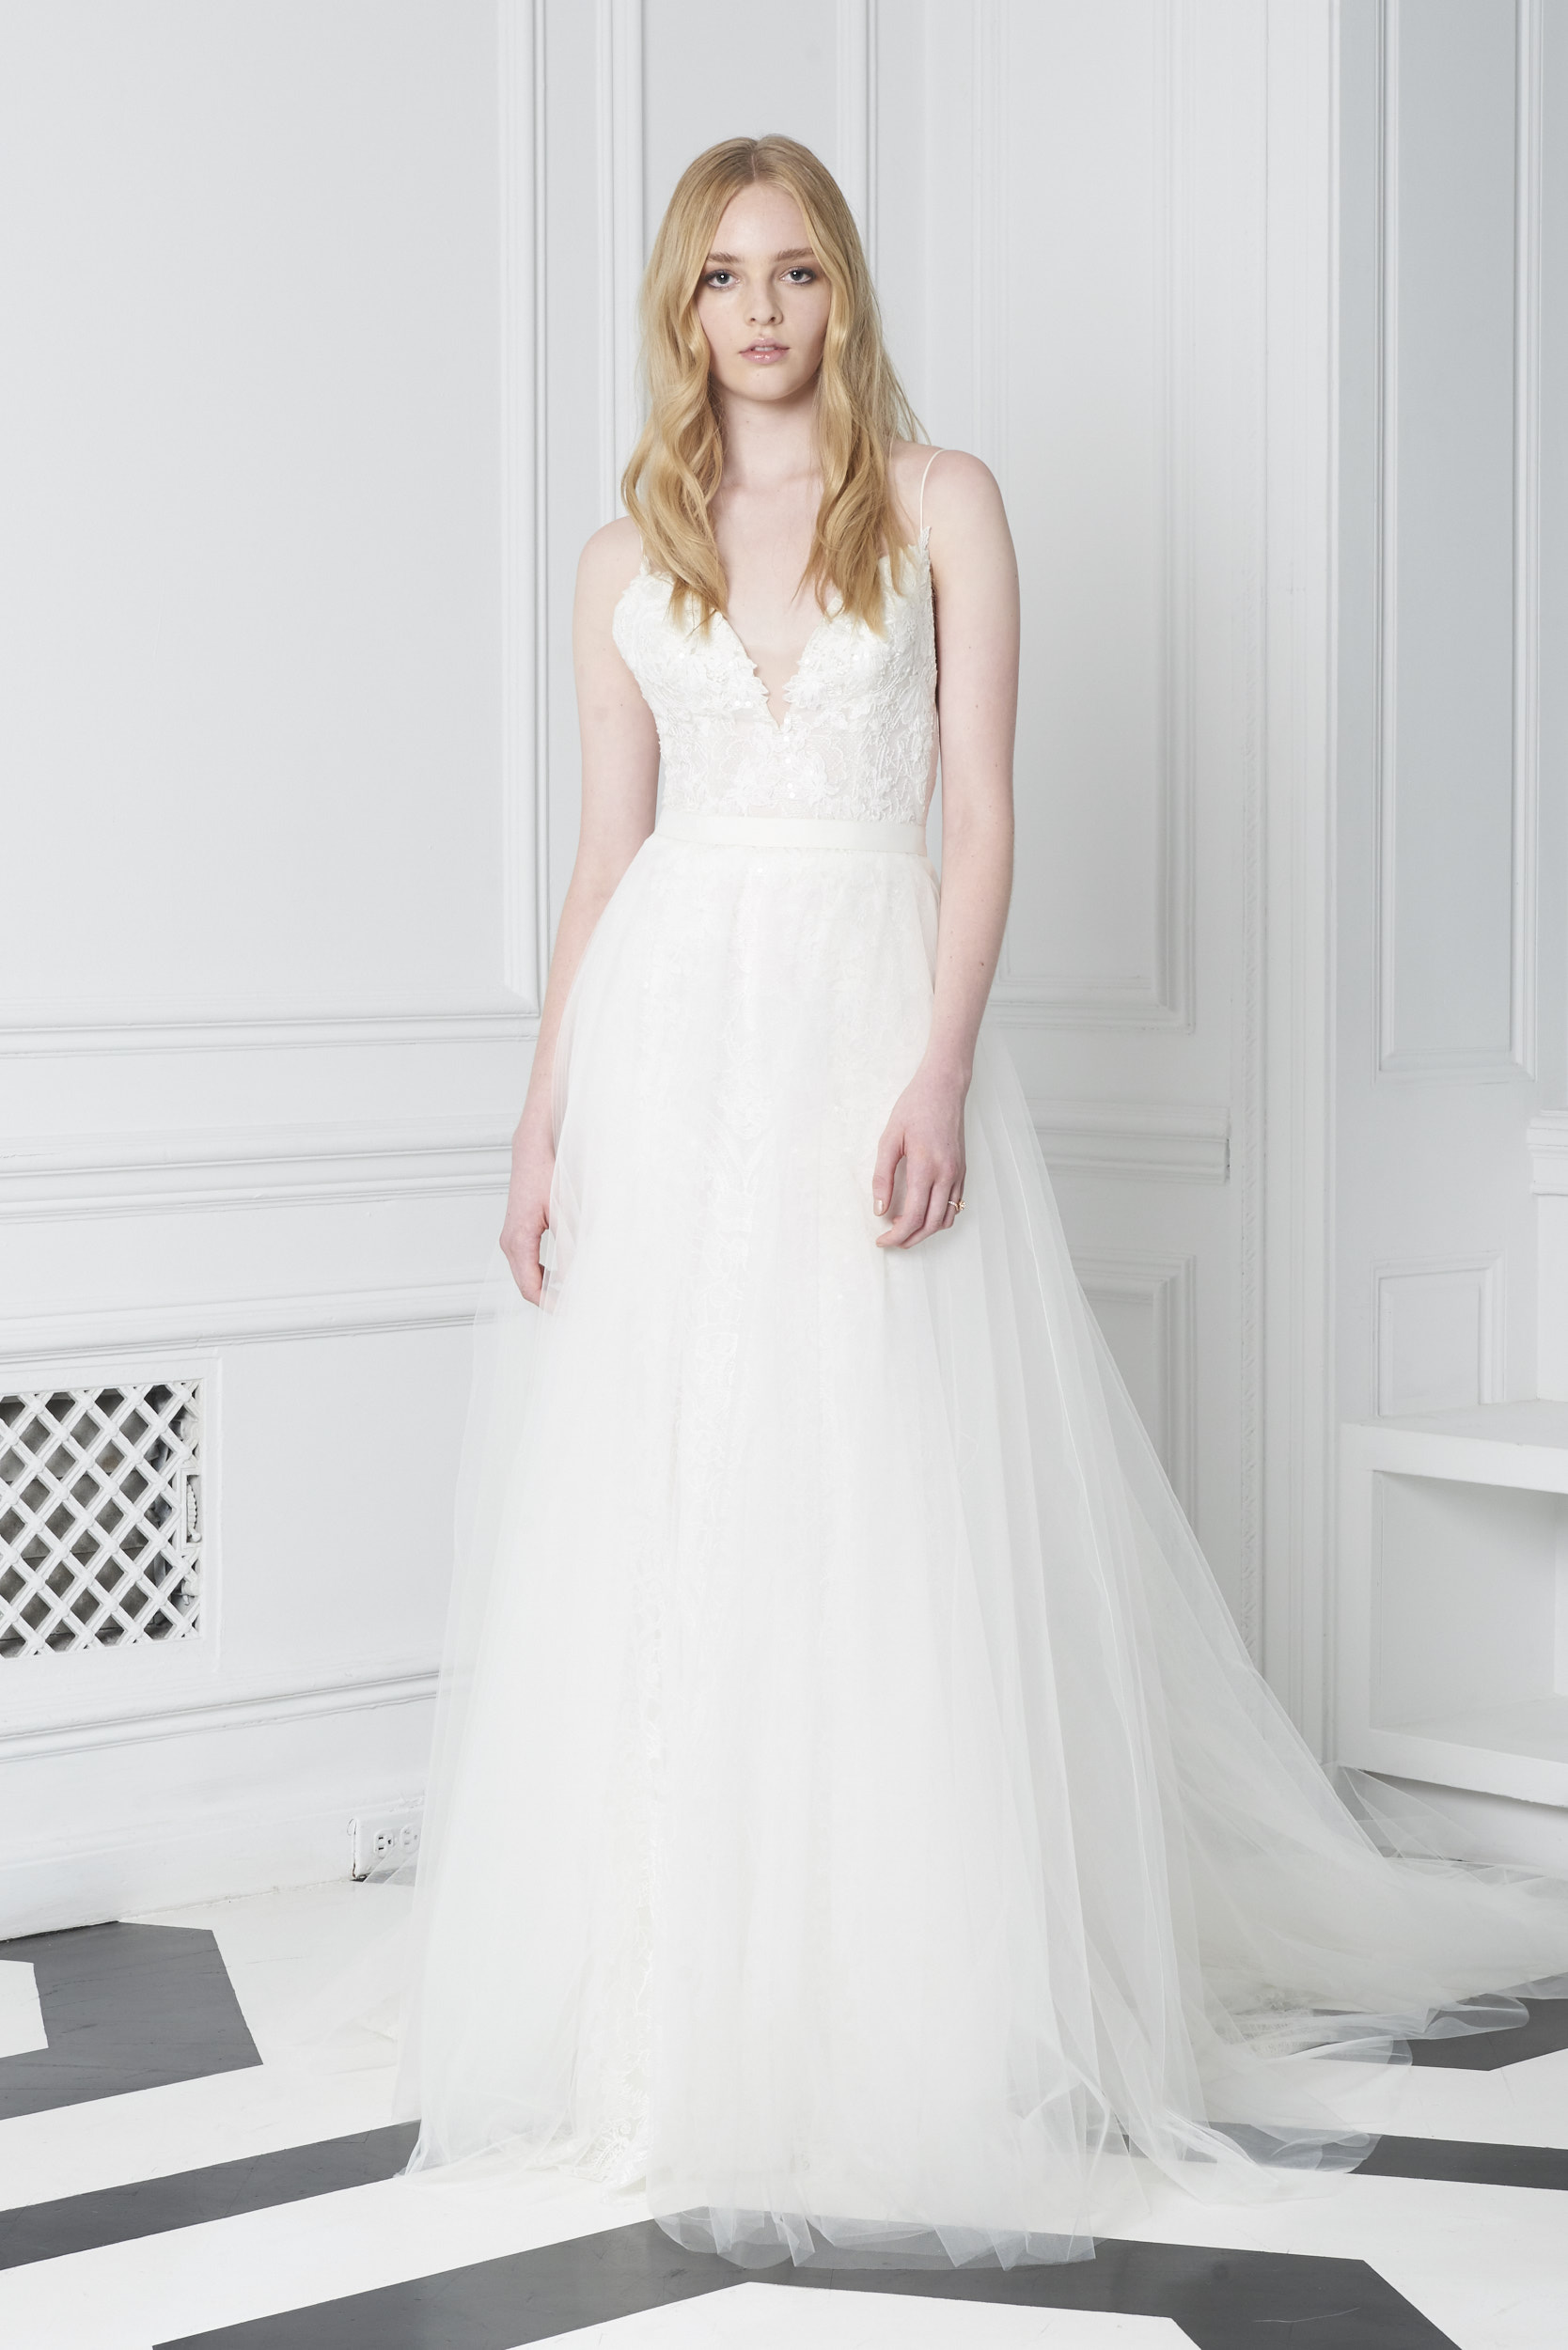 Monique Lhuillier Bliss Fall 2018 A-line Wedding Dress with V-Neckline and Tulle Skirt